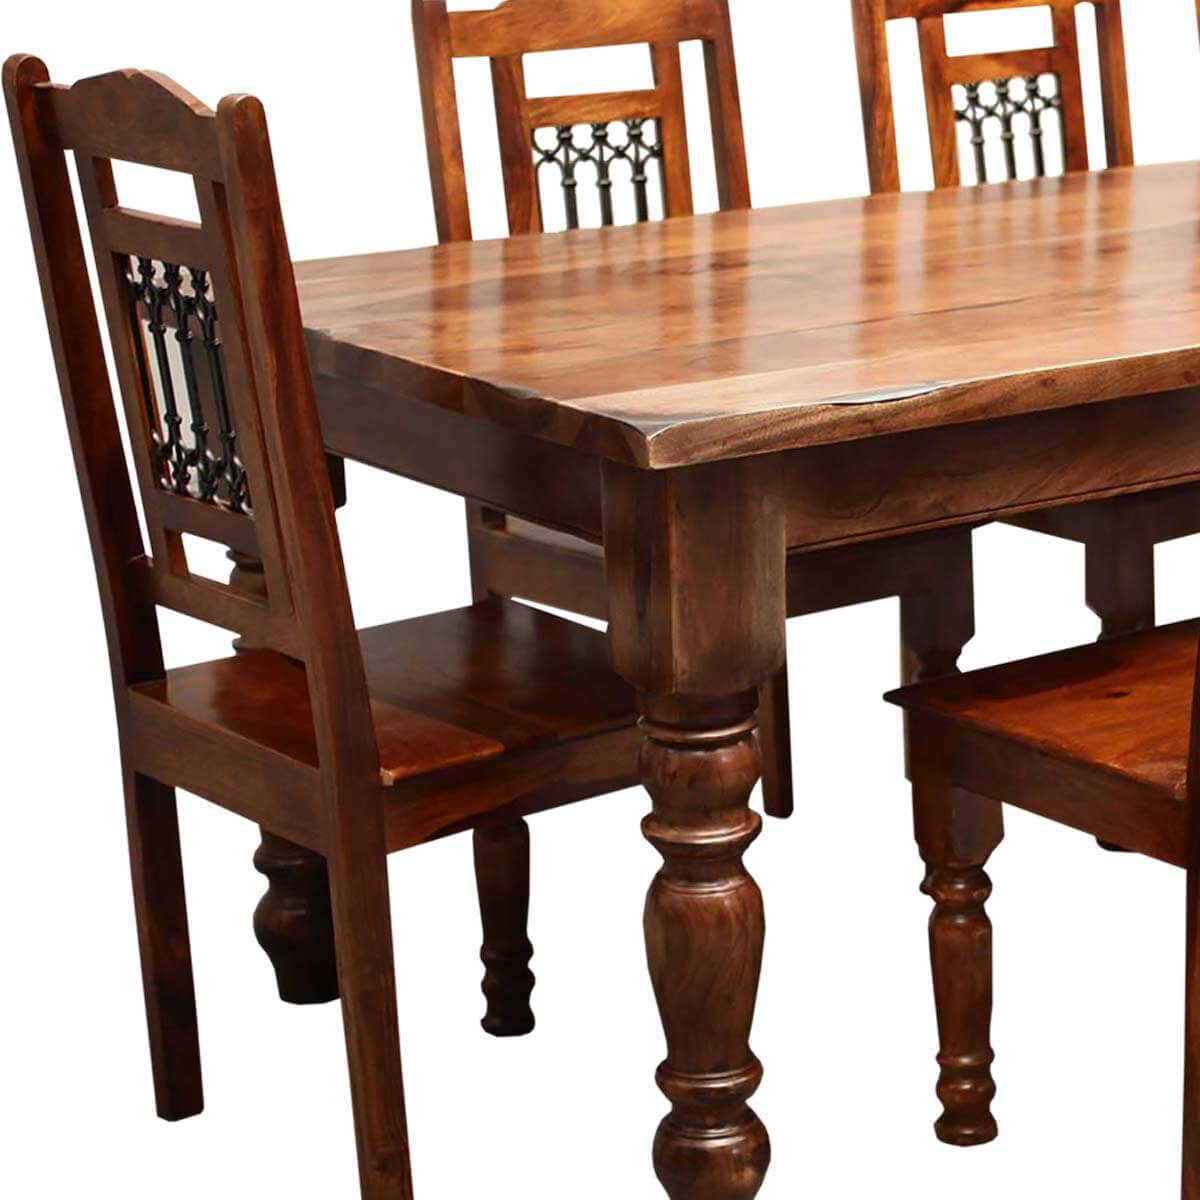 Rustic Wood Chairs Rustic Furniture Solid Wood Large Dining Table And 8 Chair Set